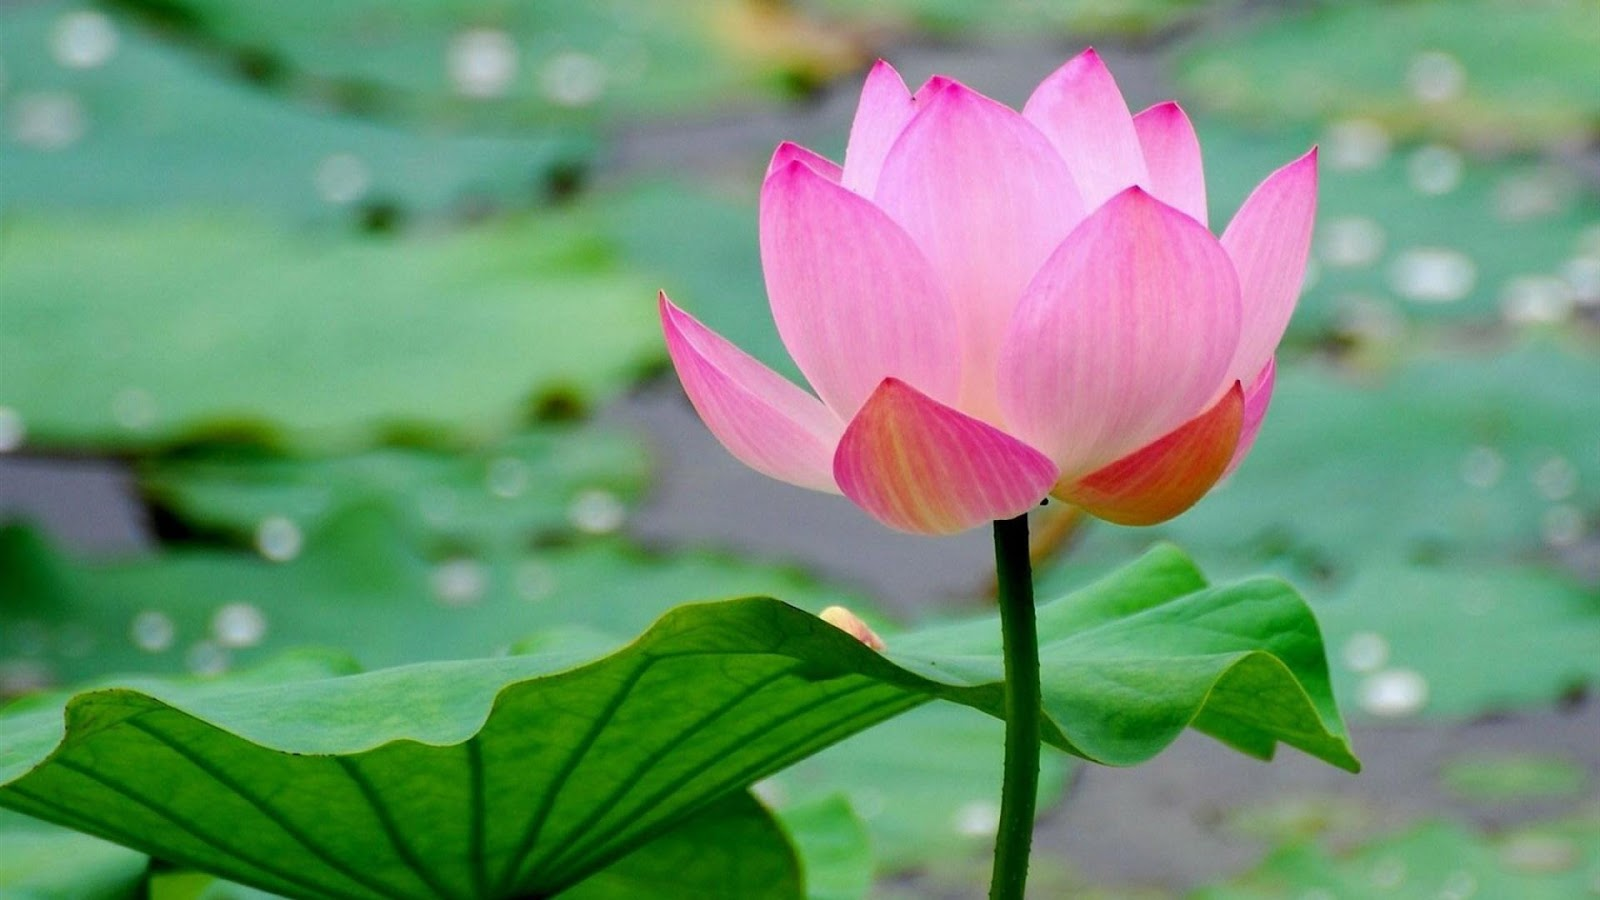 Beautiful lotus flower hd wallpapers and background free downloads beautiful lotus flower hd wallpapers and background free downloads mightylinksfo Choice Image